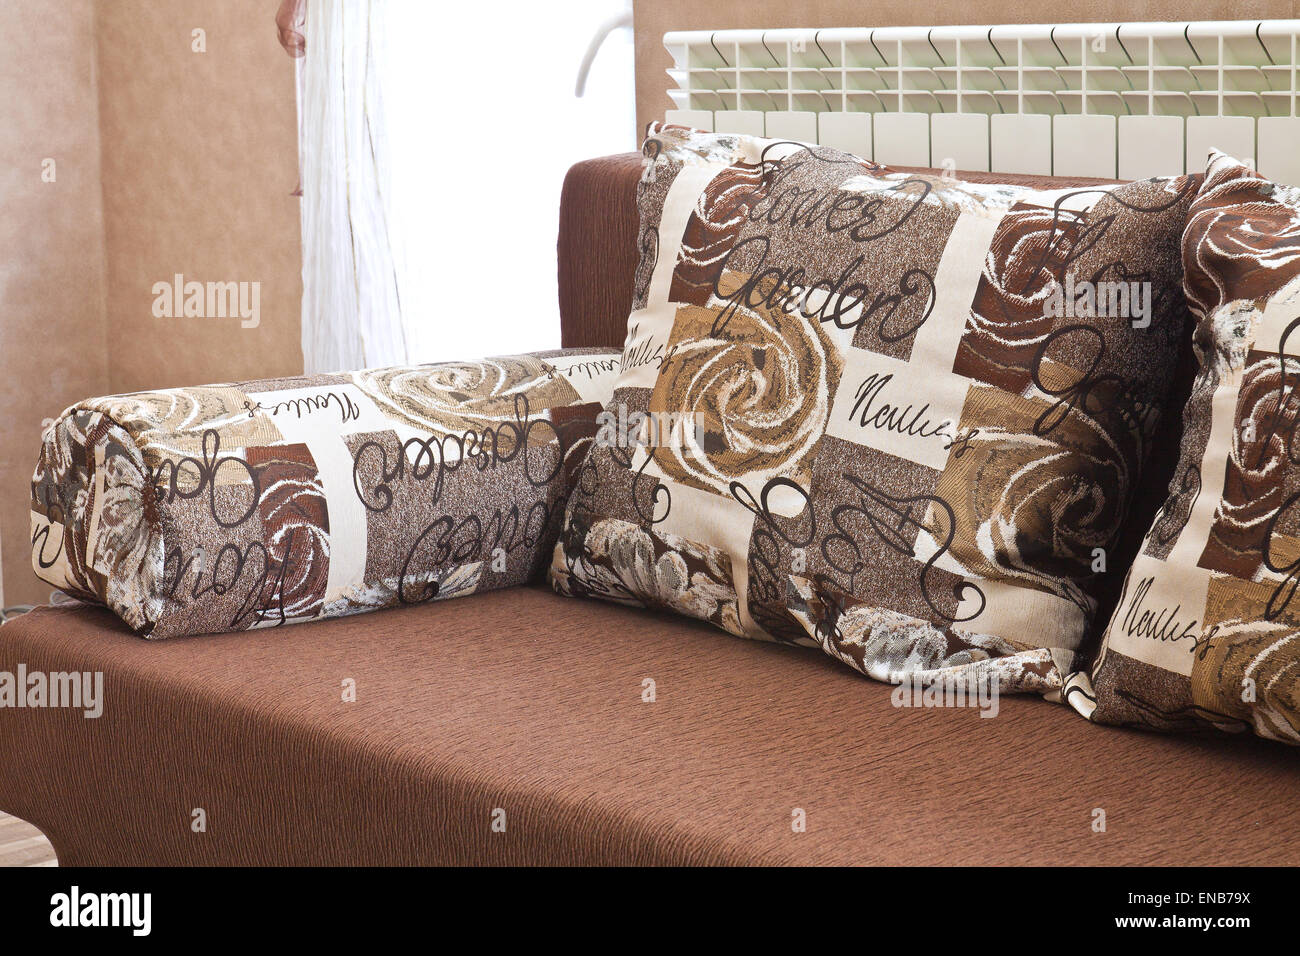 Detail from home sofa with pillows in beige brown tones - Stock Image